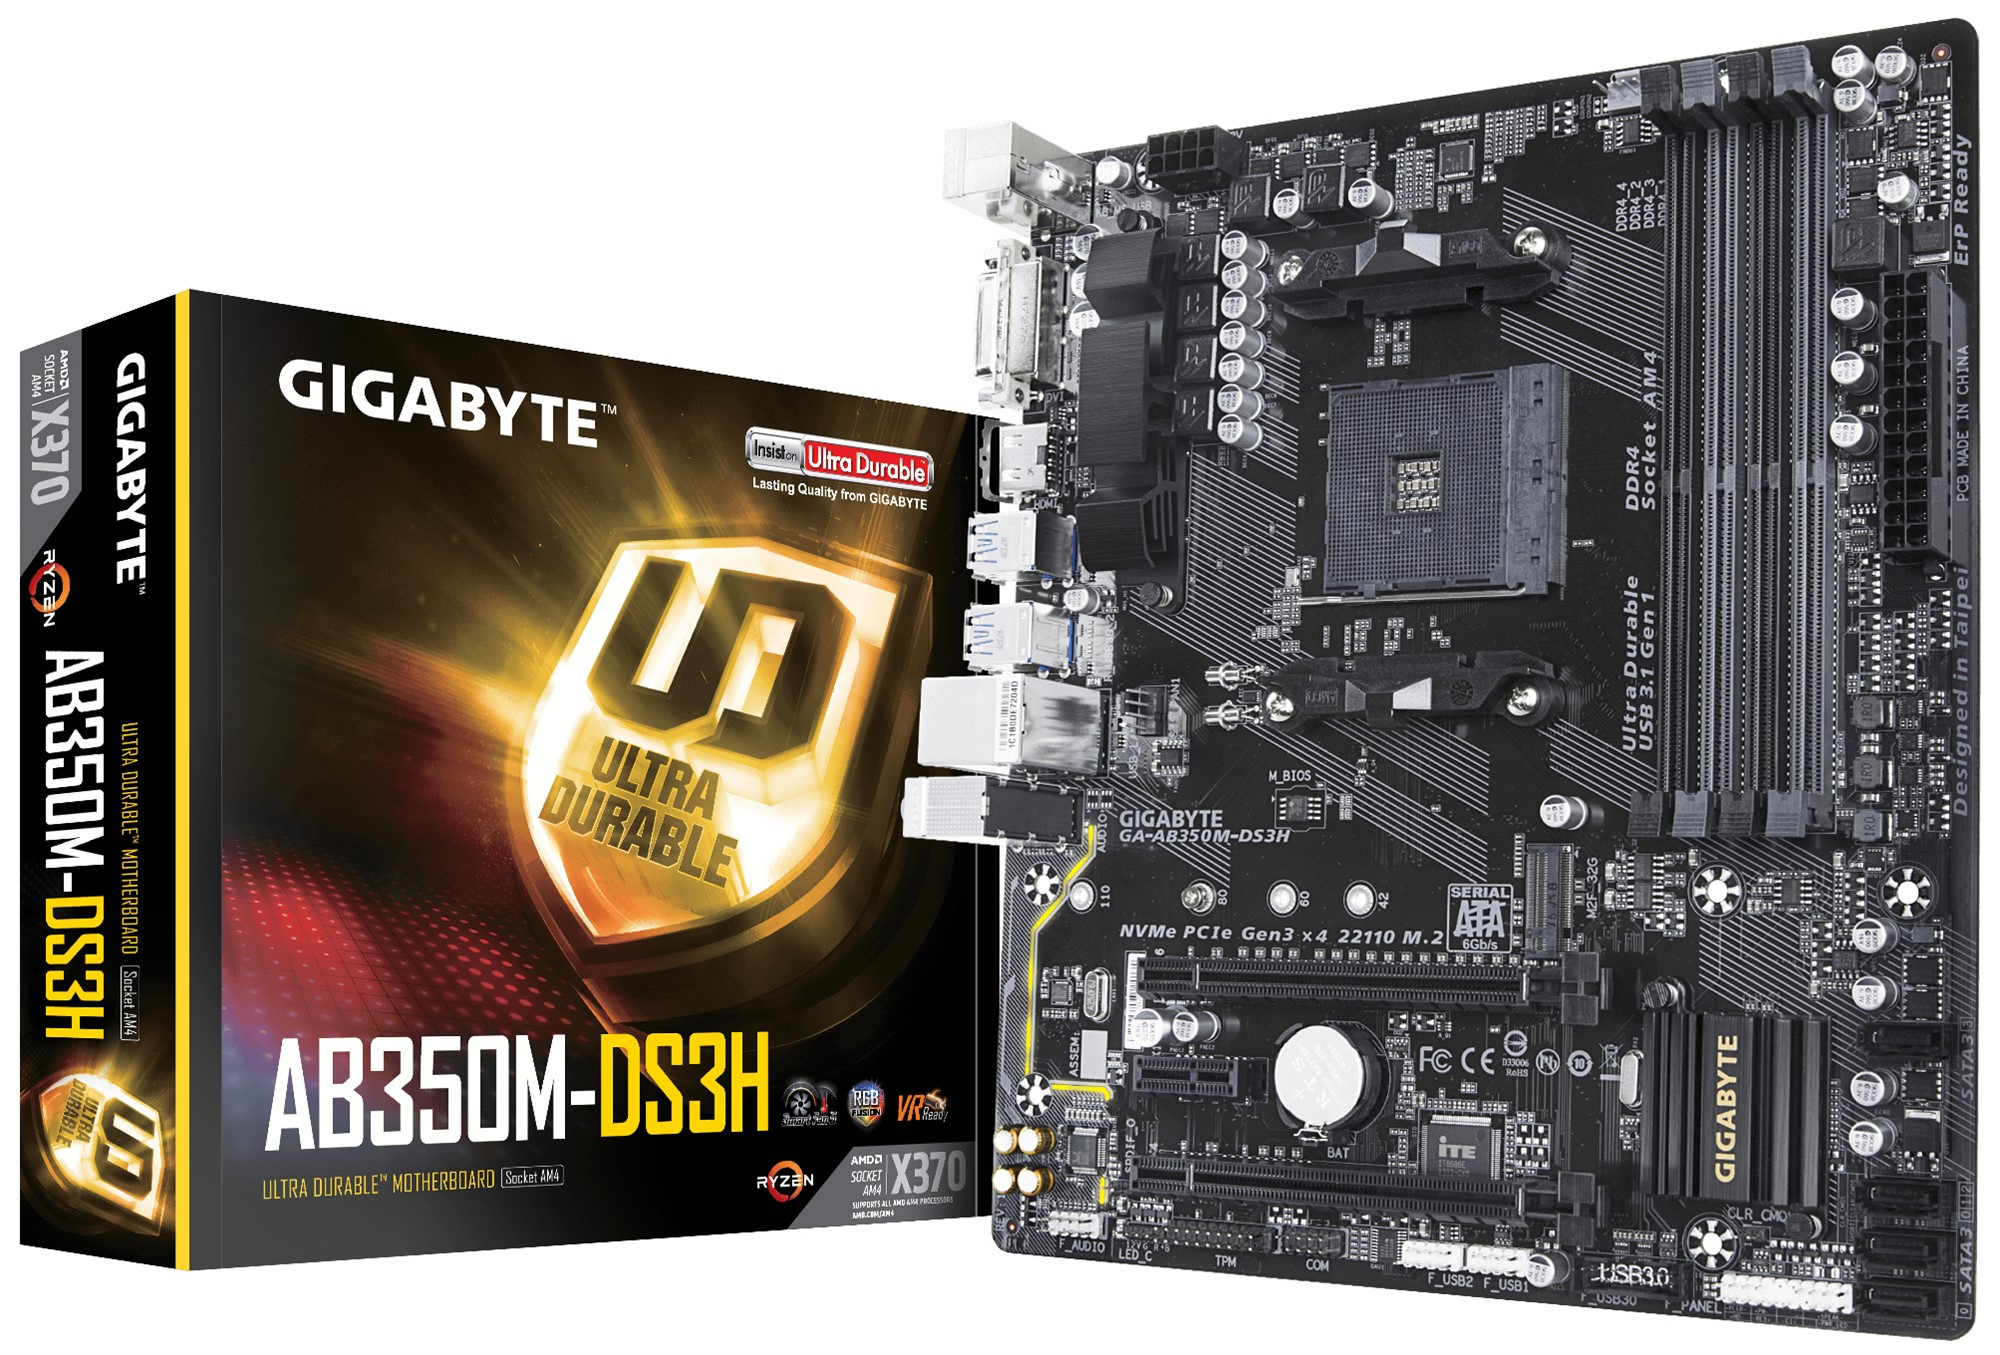 GIGABYTE GA-AB350M-DS3H AMD X370 SOCKET AM4 MICRO ATX MOTHERBOARD